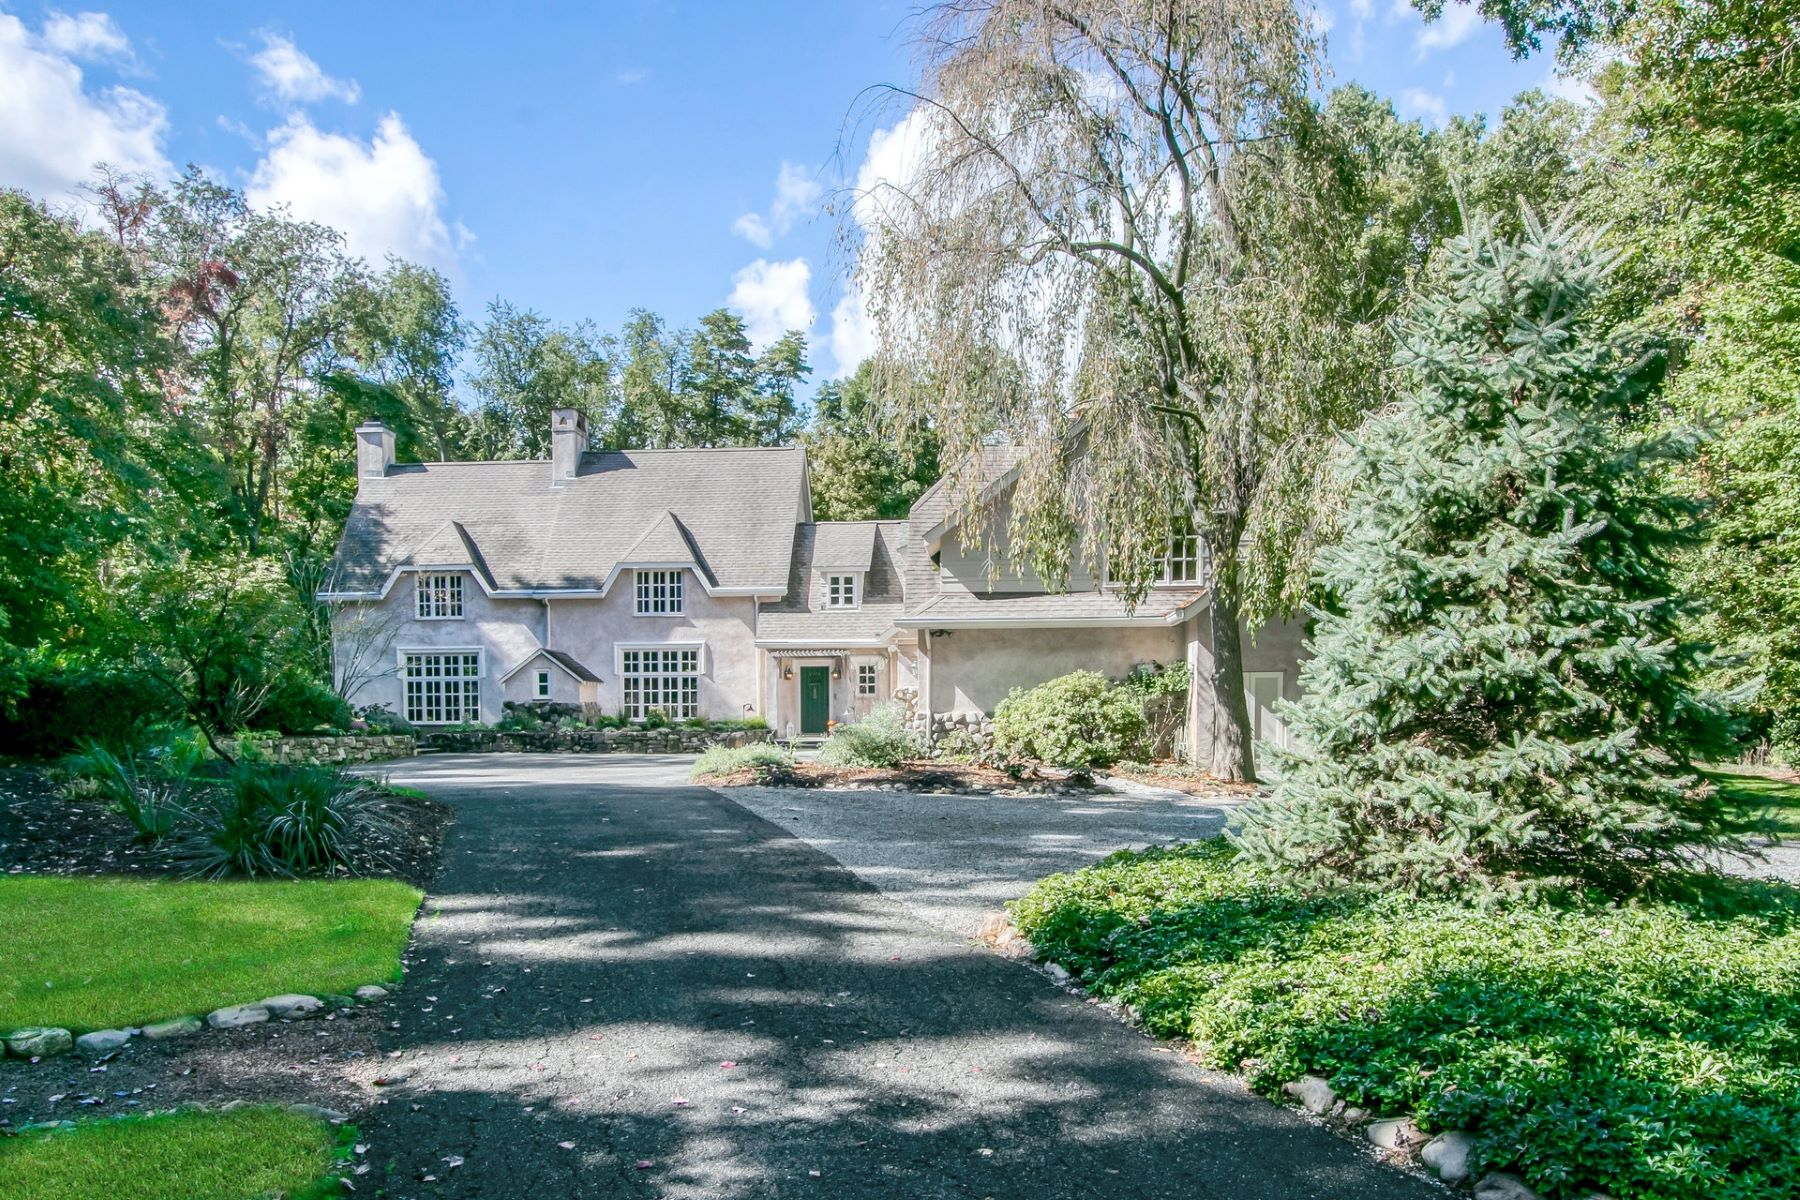 Single Family Homes for Sale at METICULOUSLY MAINTAINED 26 Ash Road, Upper Saddle River, New Jersey 07458 United States